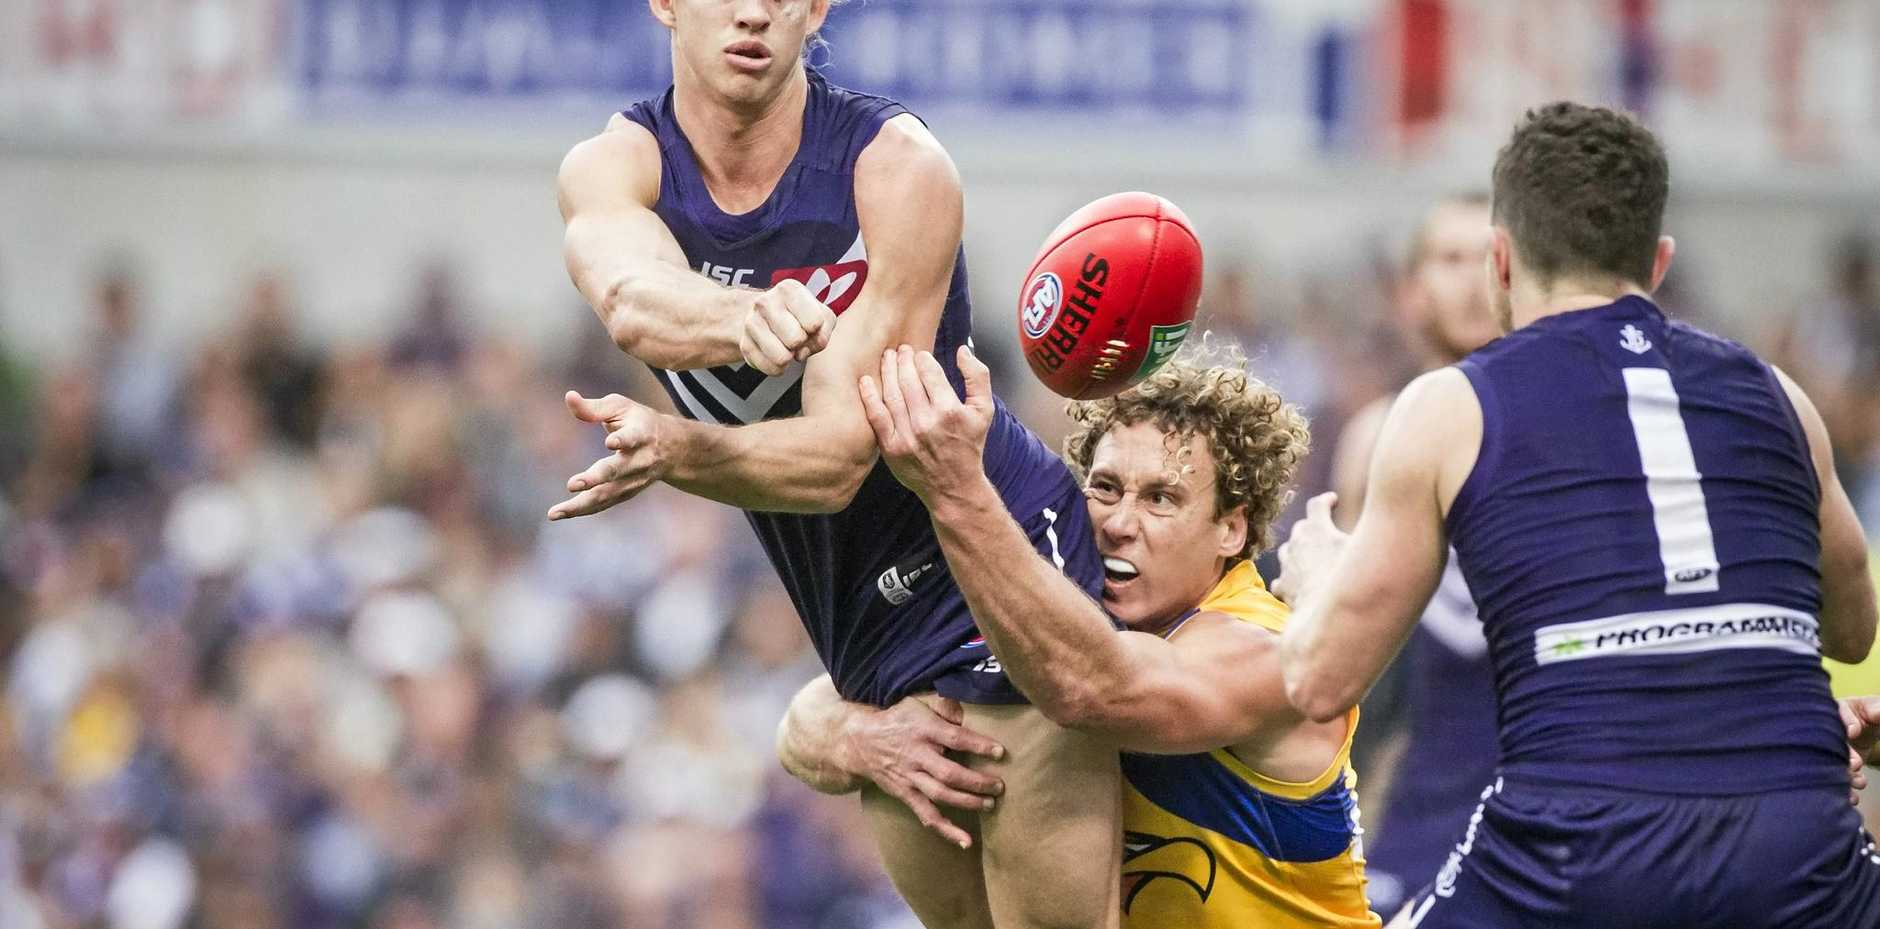 NEW DEAL: Fremantle Dockers skipper Nat Fyfe has signed a new deal keeping him at the club until 2023.